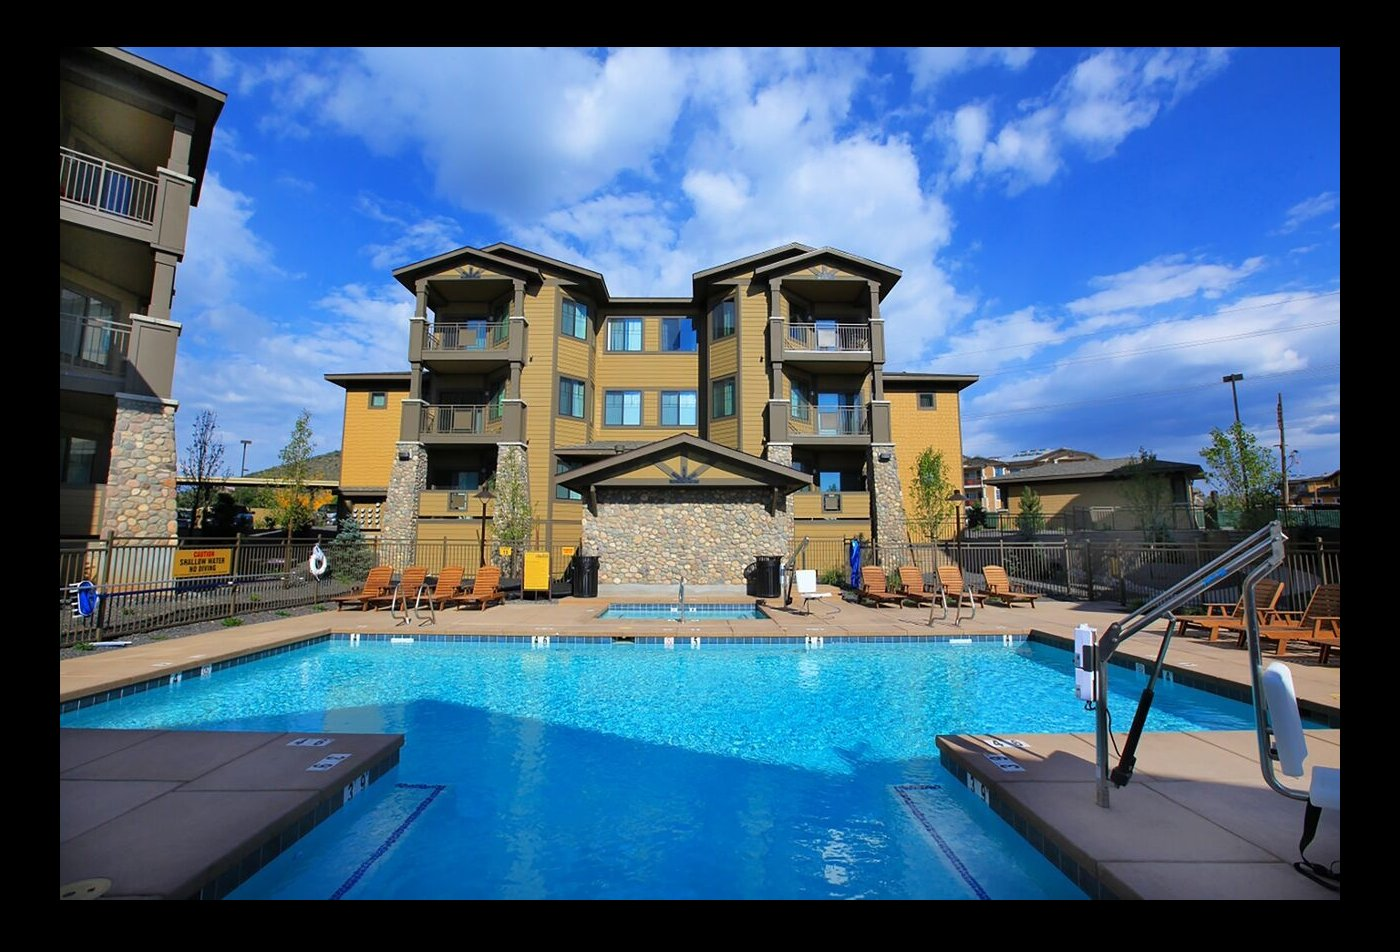 The Elevation Apartments Flagstaff, AZ pooll, pool patio and exterior